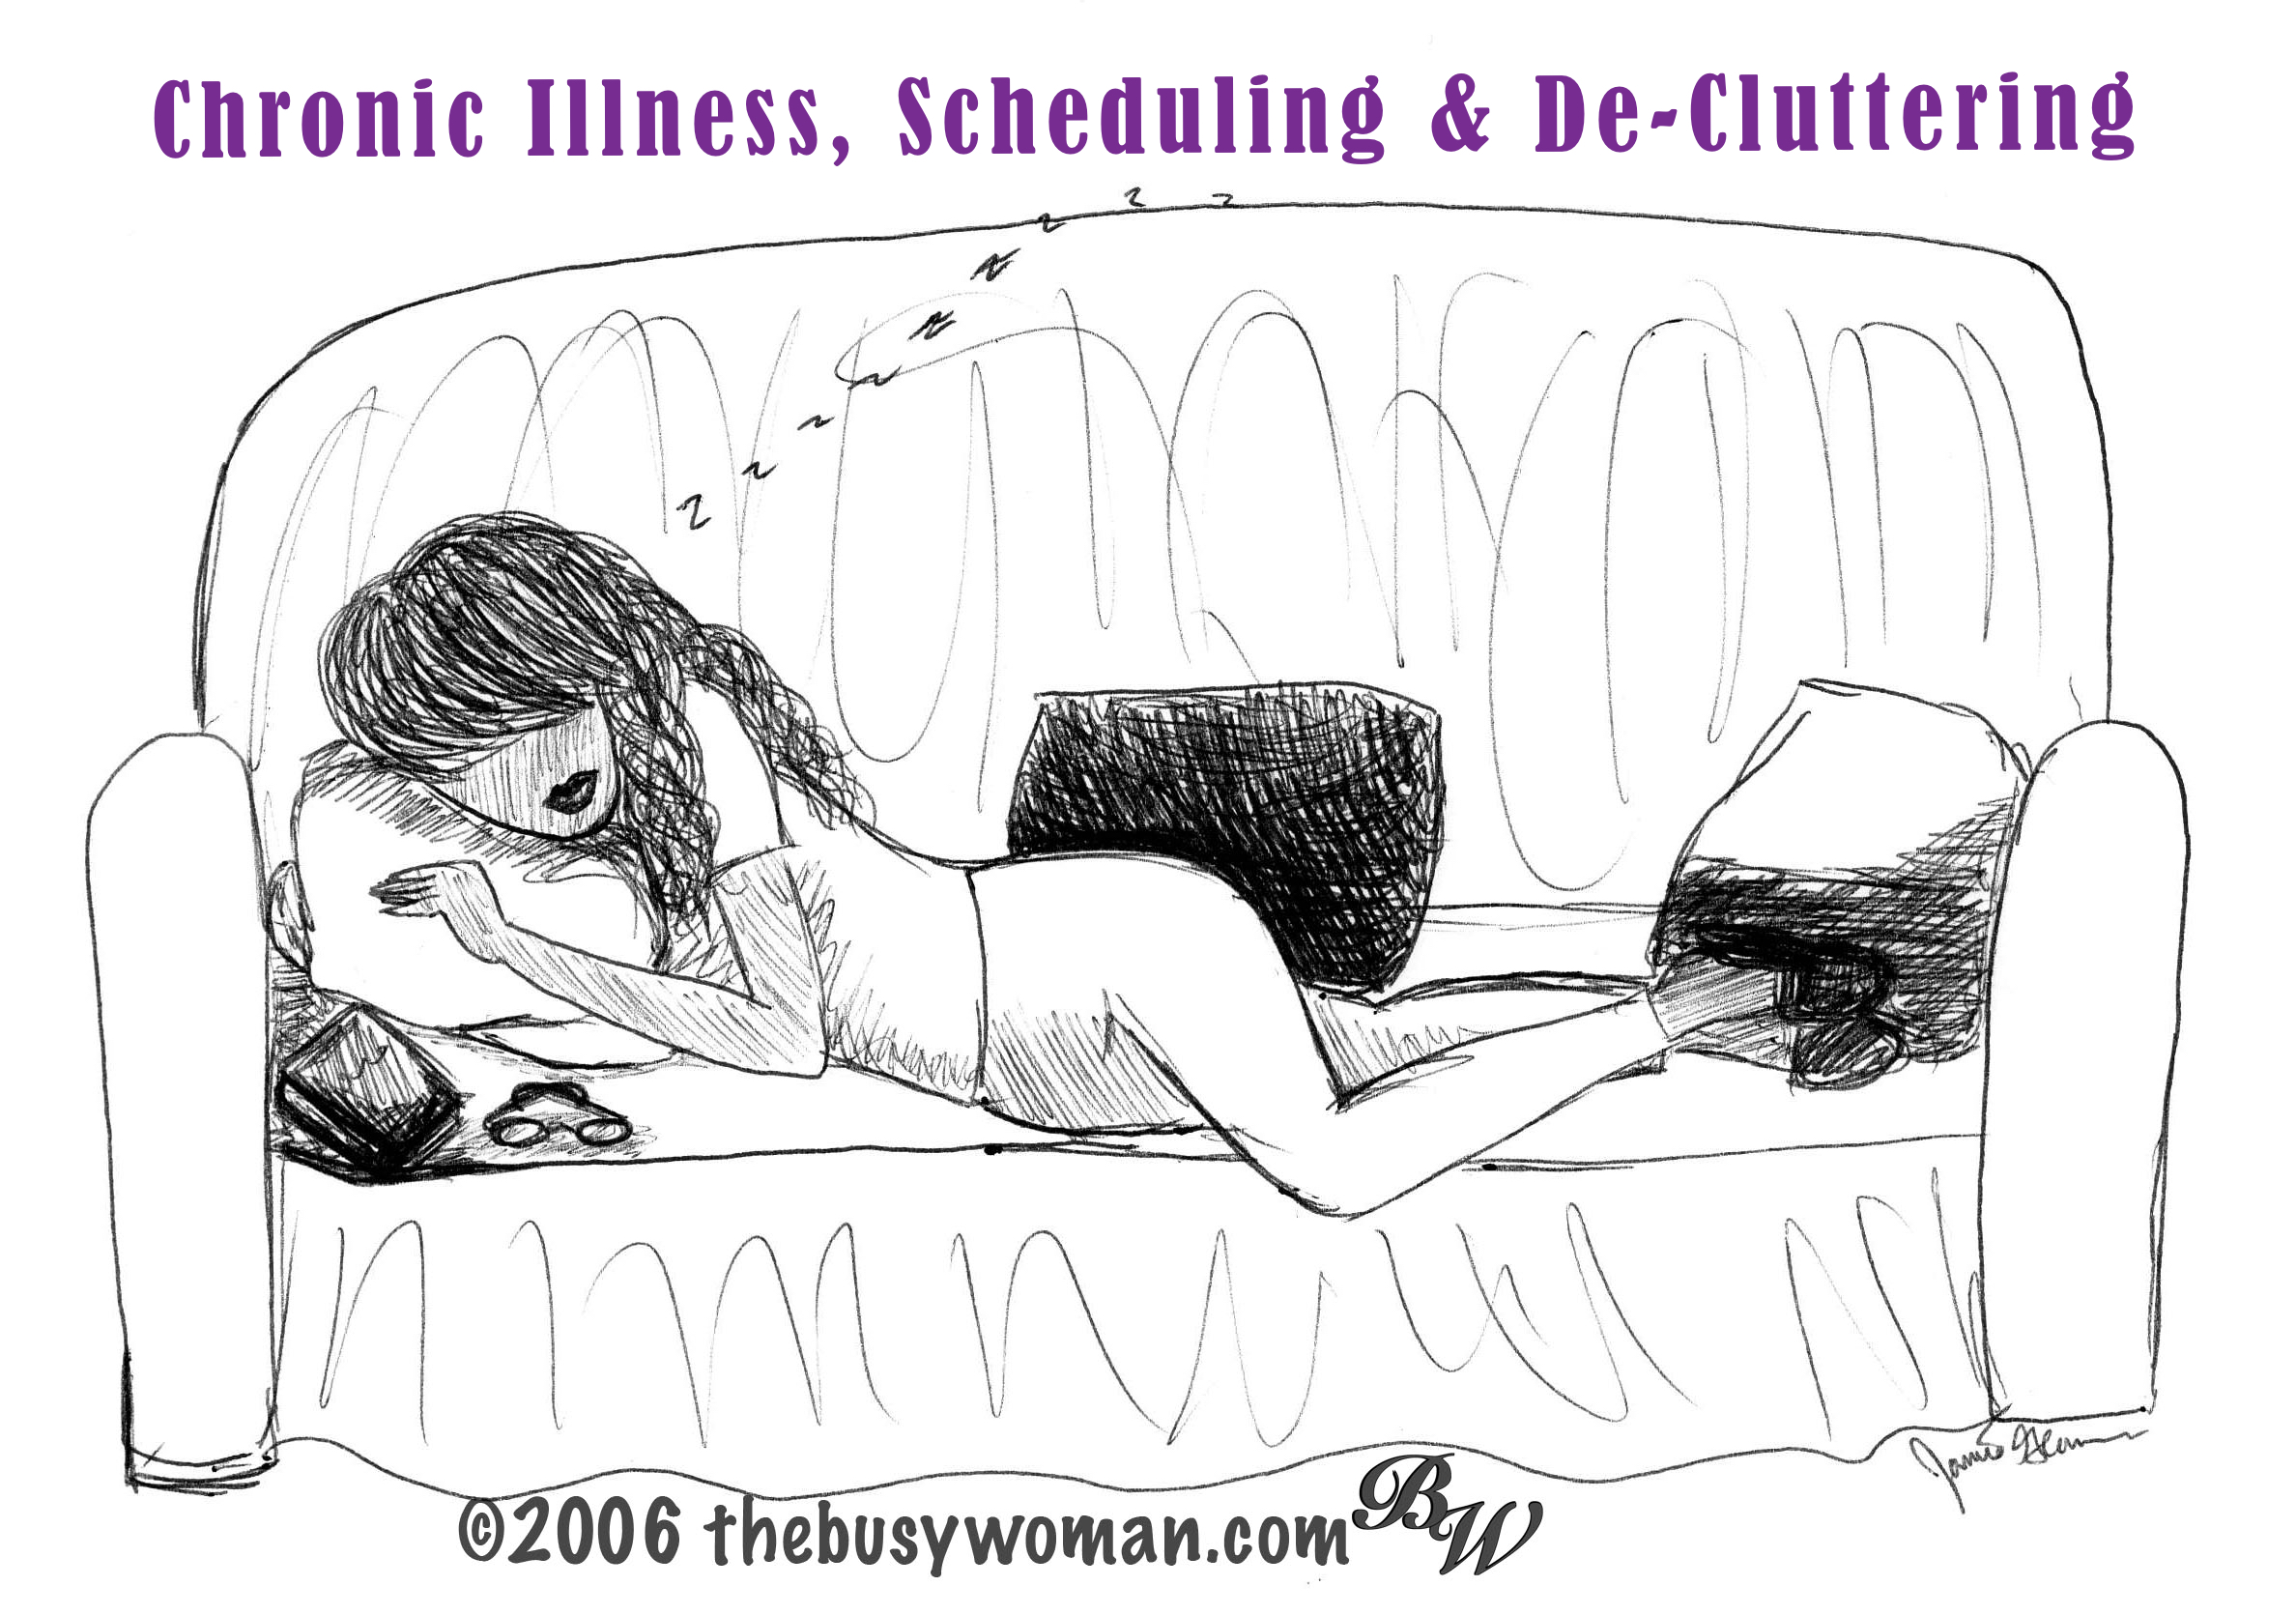 Chronic Illness, Scheduling & De-Cluttering by The Busy Woman thebusywoman.com